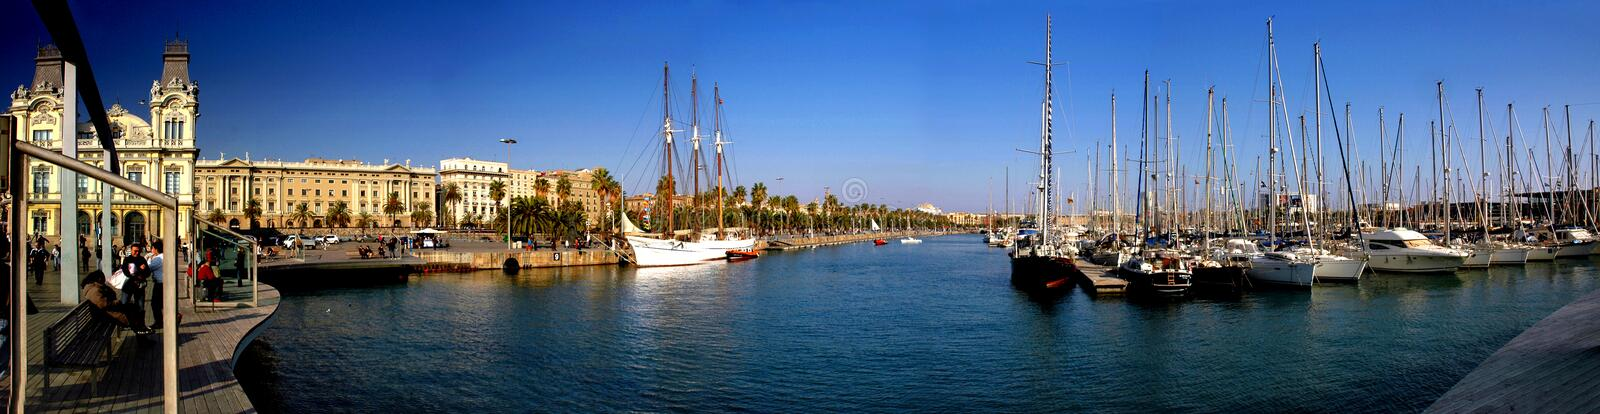 barcelona port royaltyfria bilder